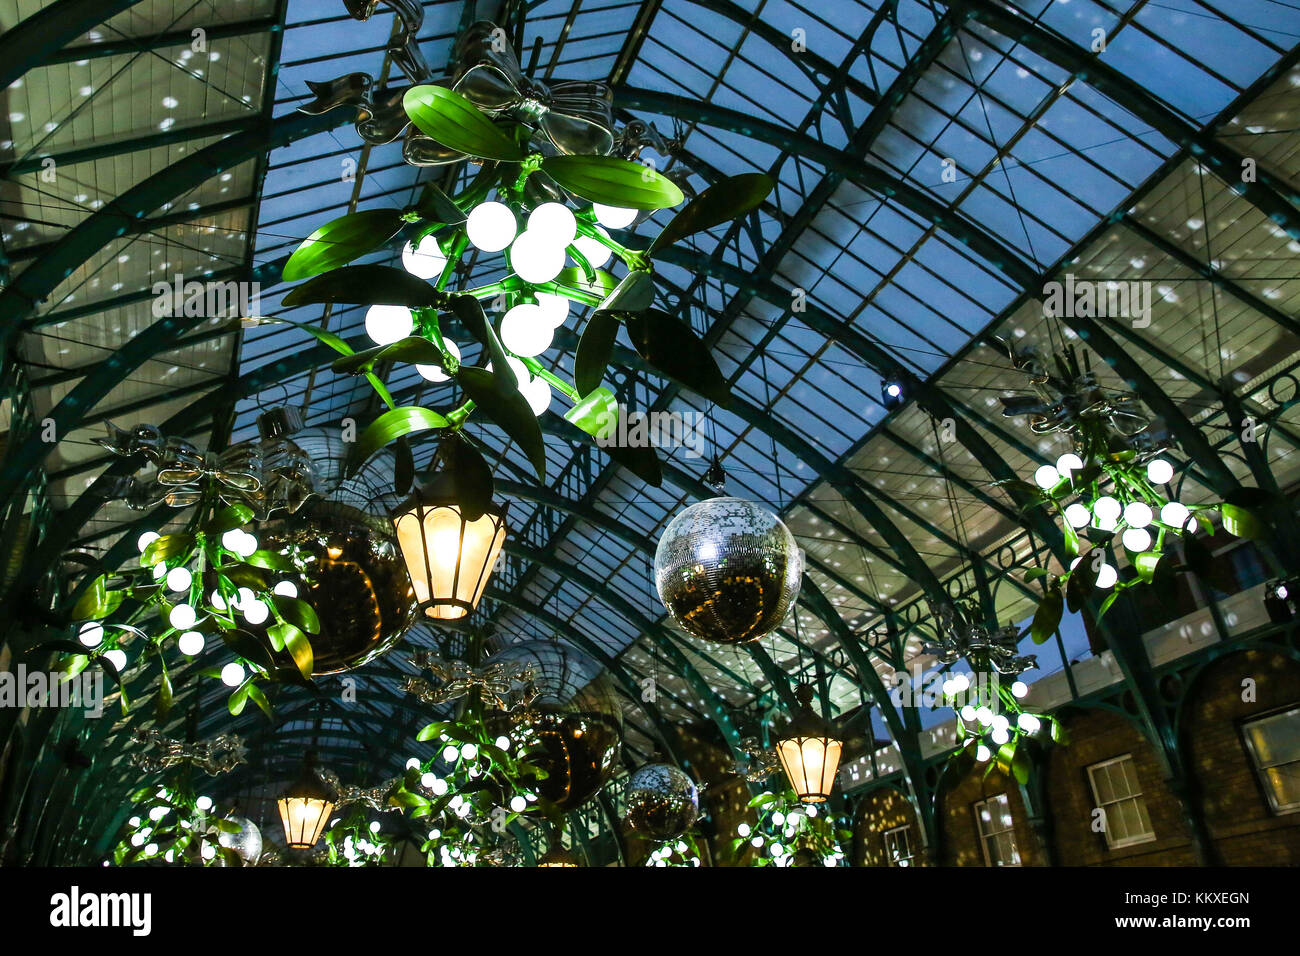 Covent Garden. London, UK. 2nd Dec, 2017. Christmas decorations and ...